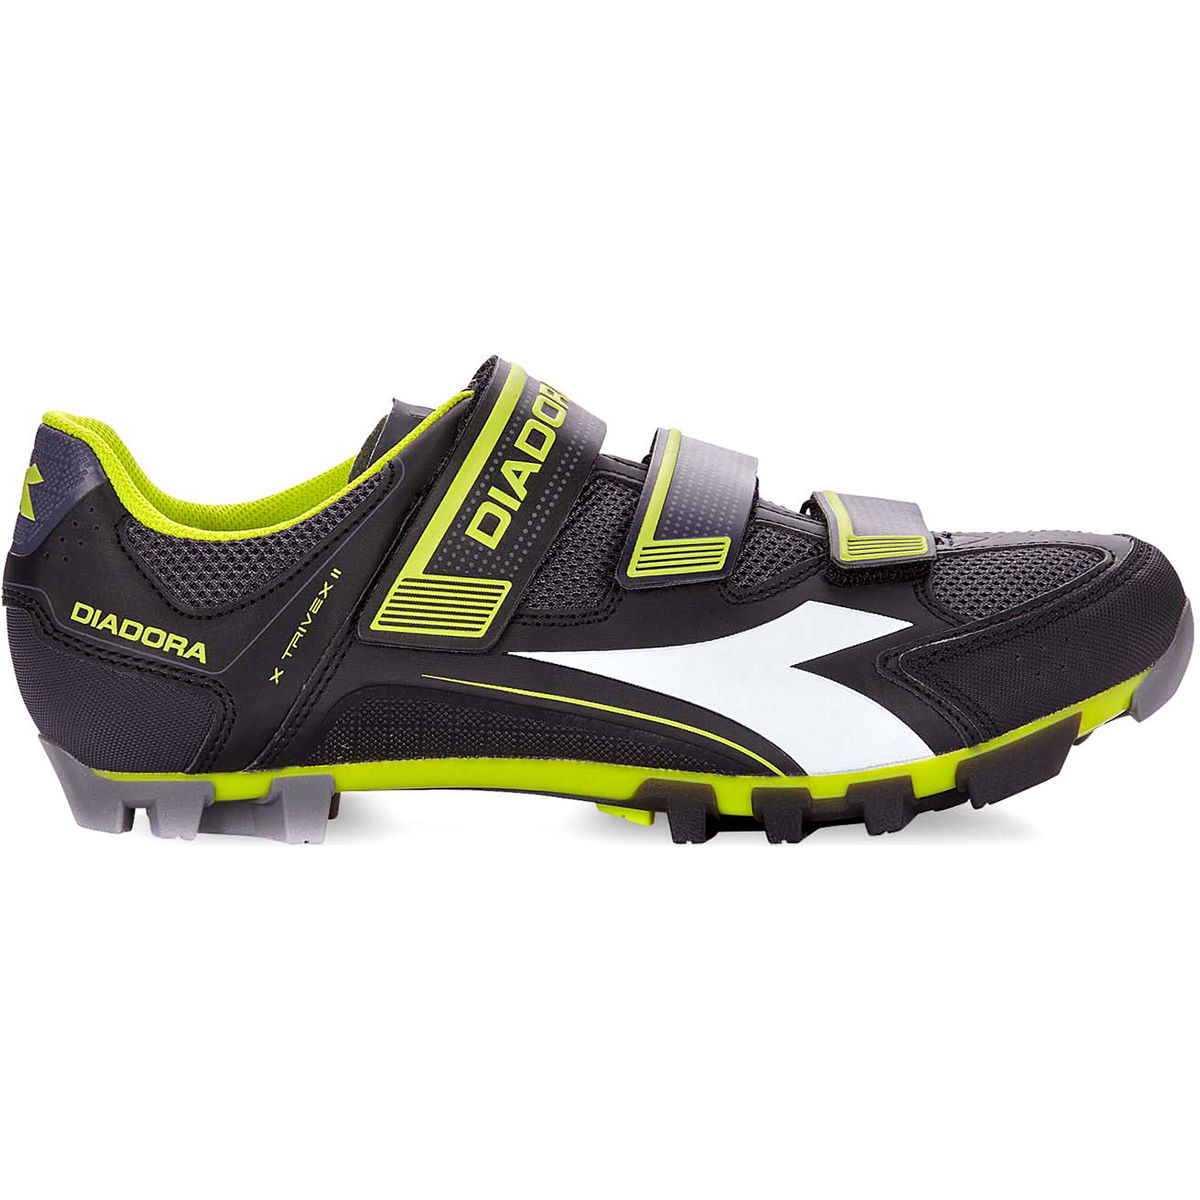 Diadora X Trivex II MTB SPD Shoes - Zapatillas MTB